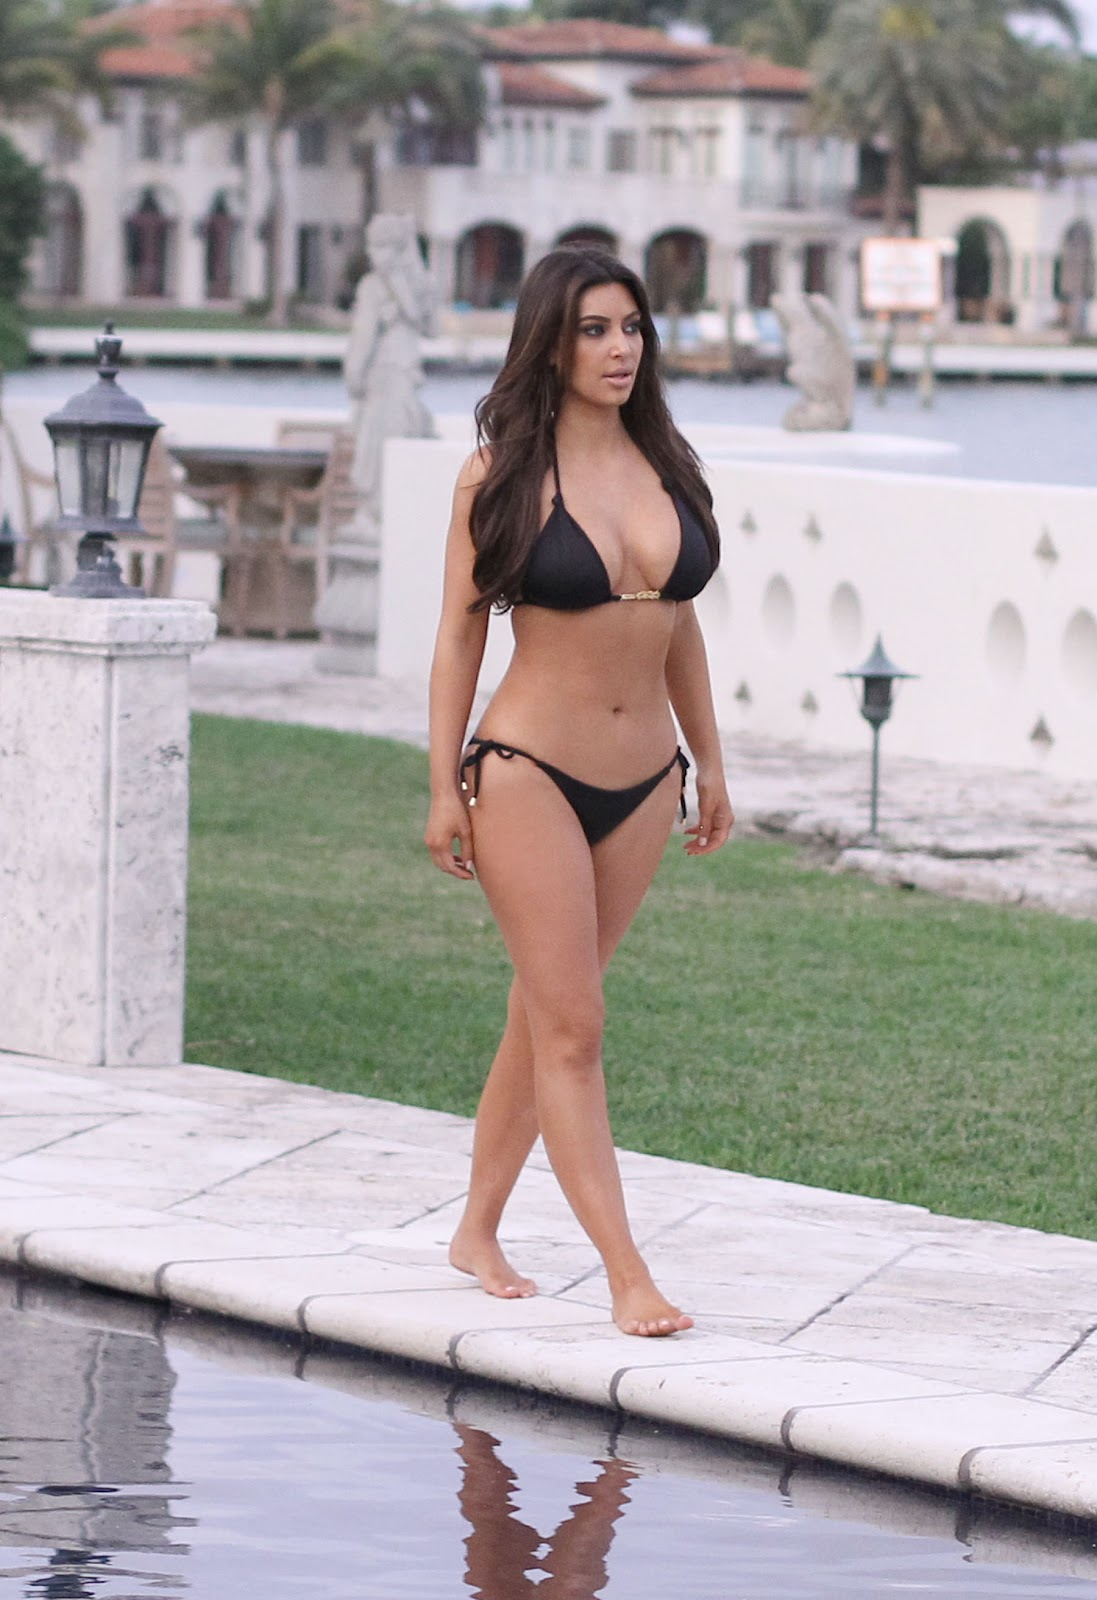 This Kardashian bikini wallpapers advise you